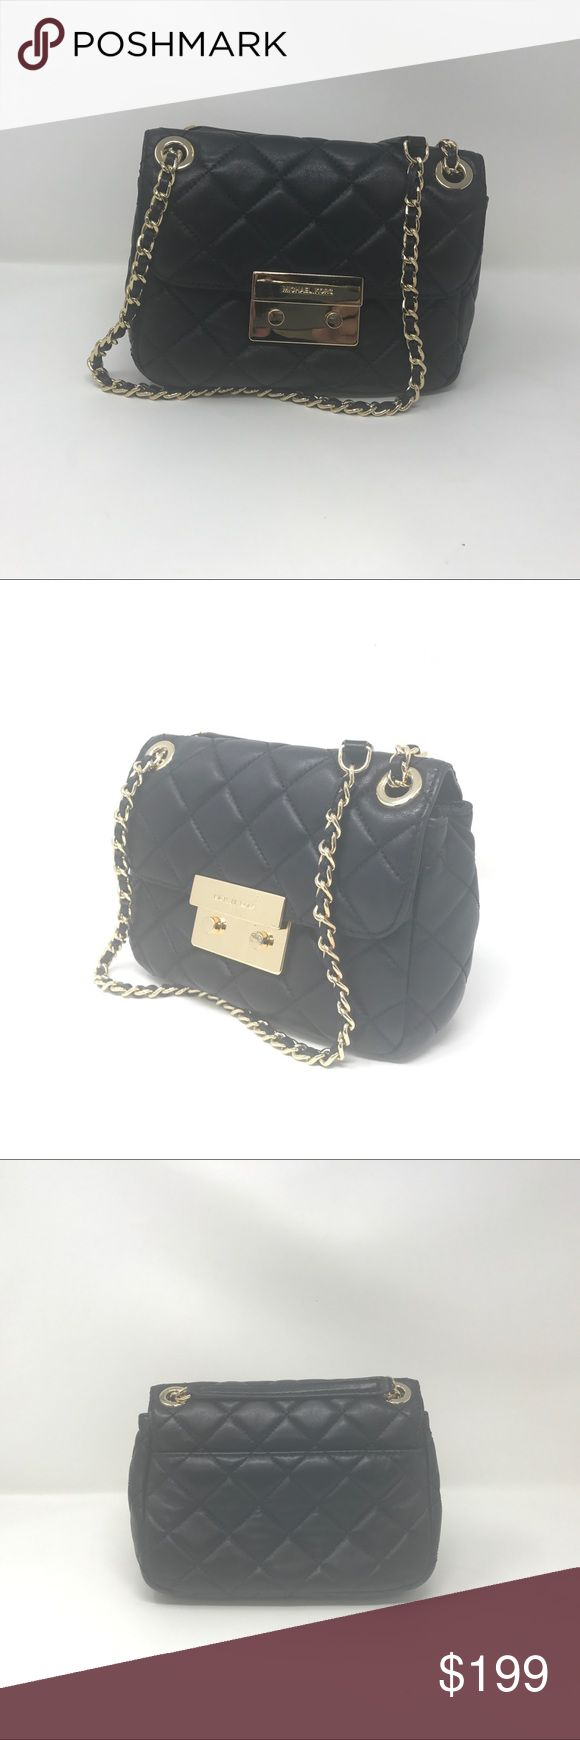 Michael Kors Sloan Gold Quilted Chain shoulder bag This is pre-owned  Sloan Black Gold Quilted Leather Chain Shoulder Bag.  Bag is in  perfect condition.   Bag lock have some dings and scratches except that  bag is perfect. Michael Kors Bags Shoulder Bags